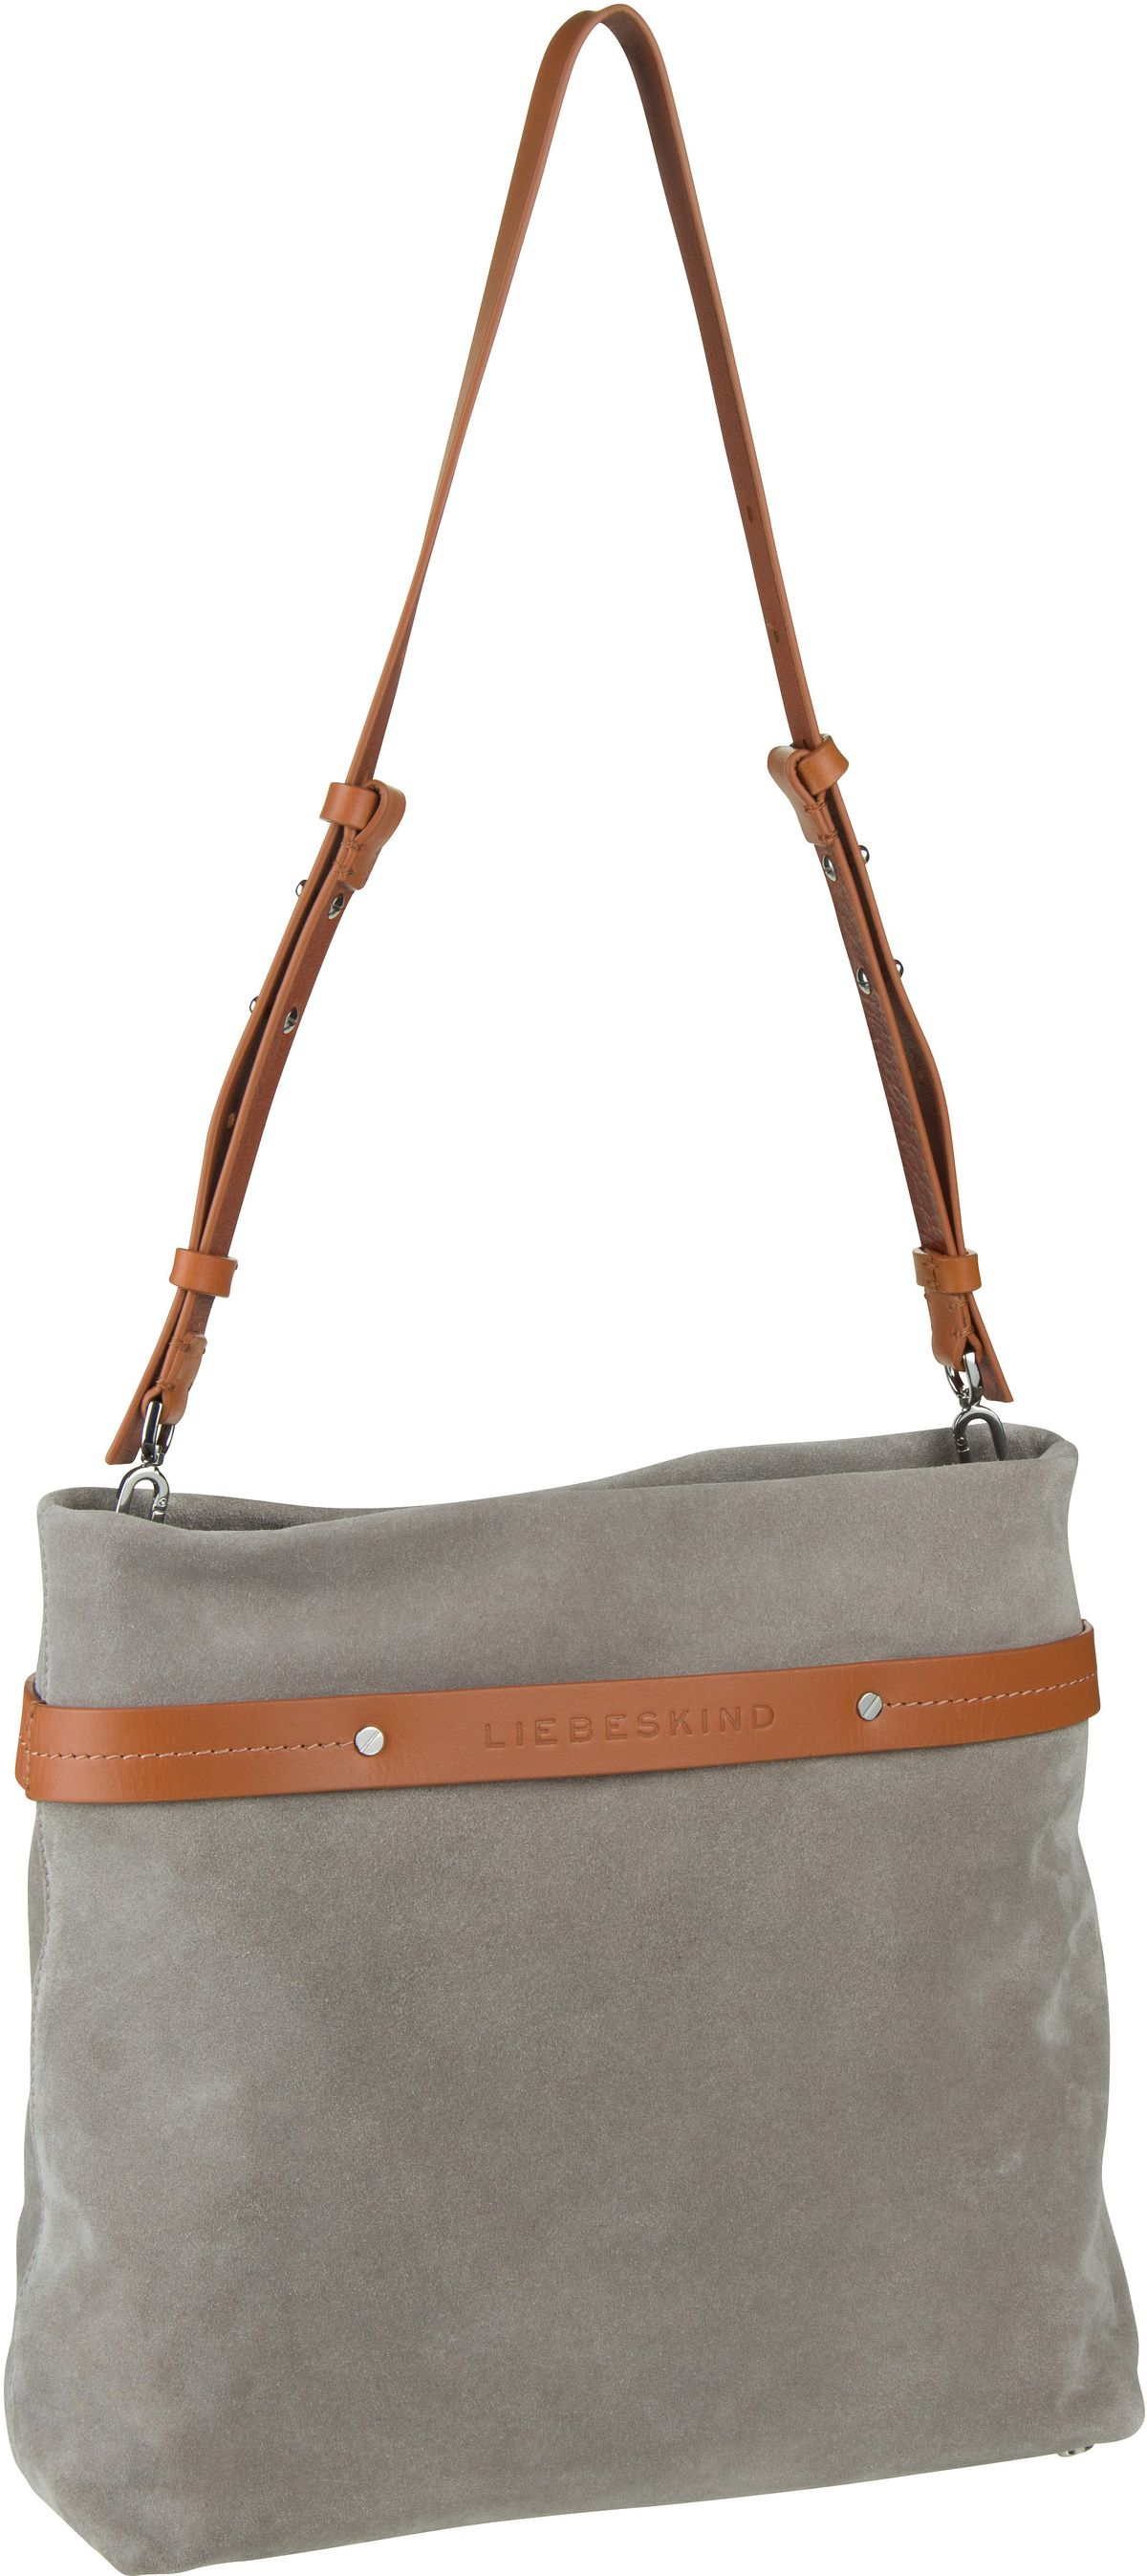 Berlin Handtasche SoShopper Hobo M Suede String Grey